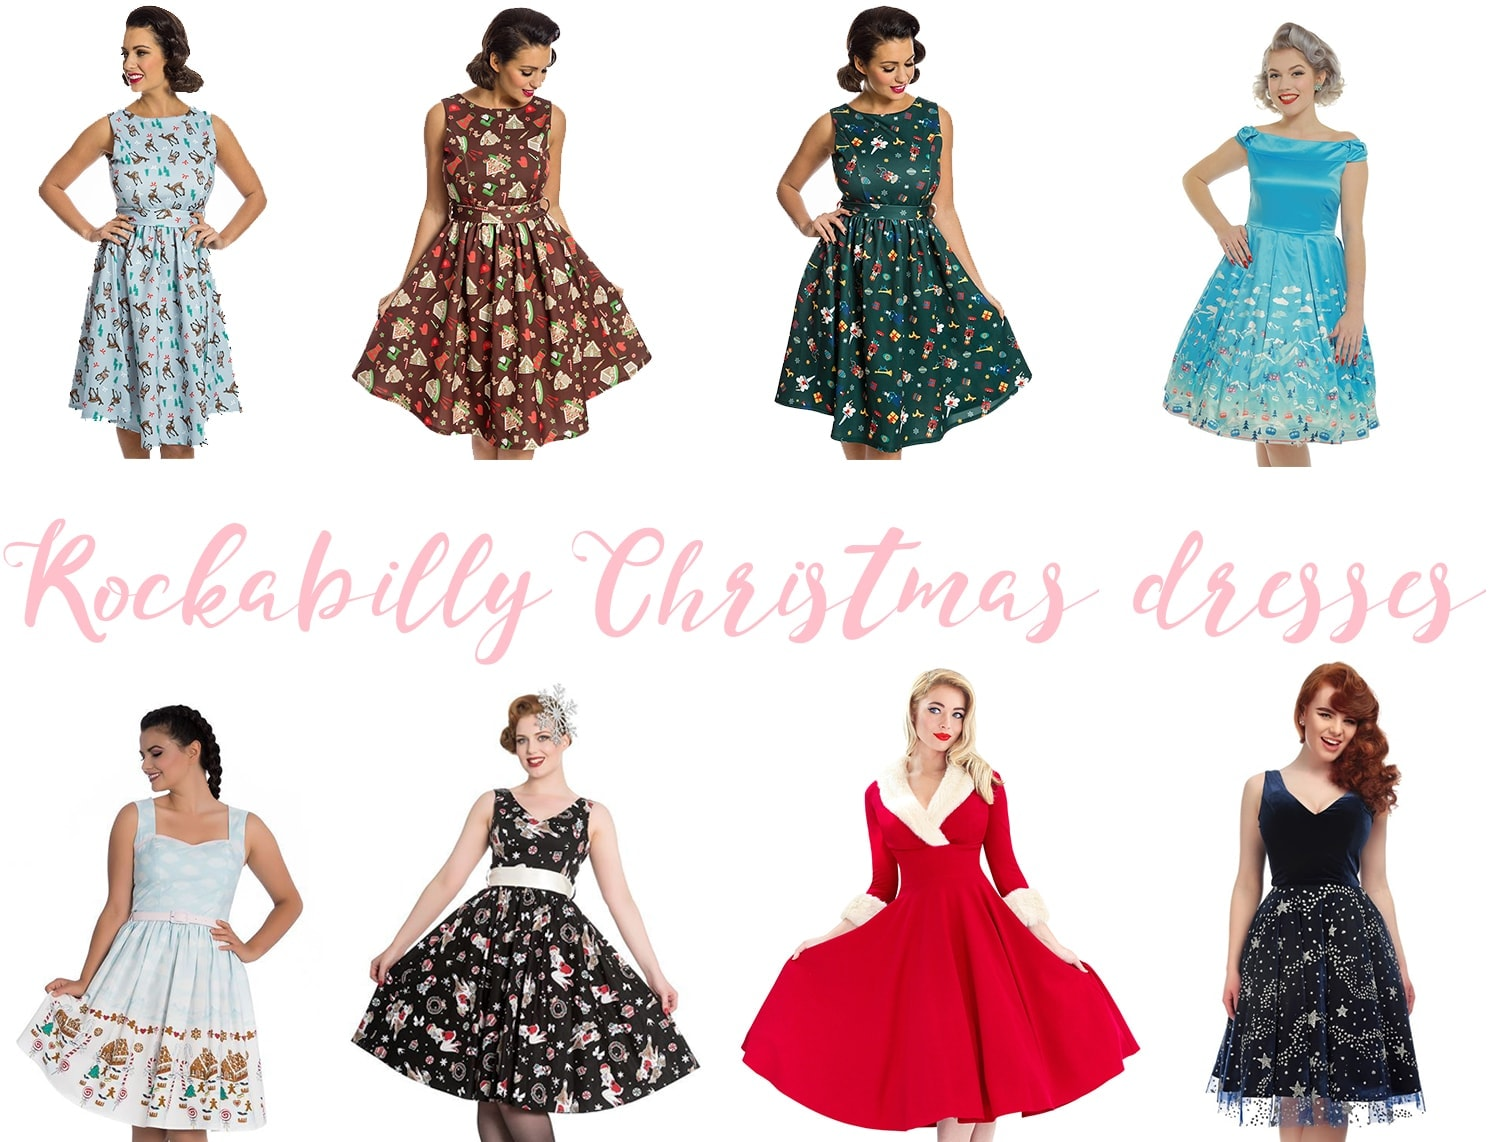 Rockabilly Christmas Dresses